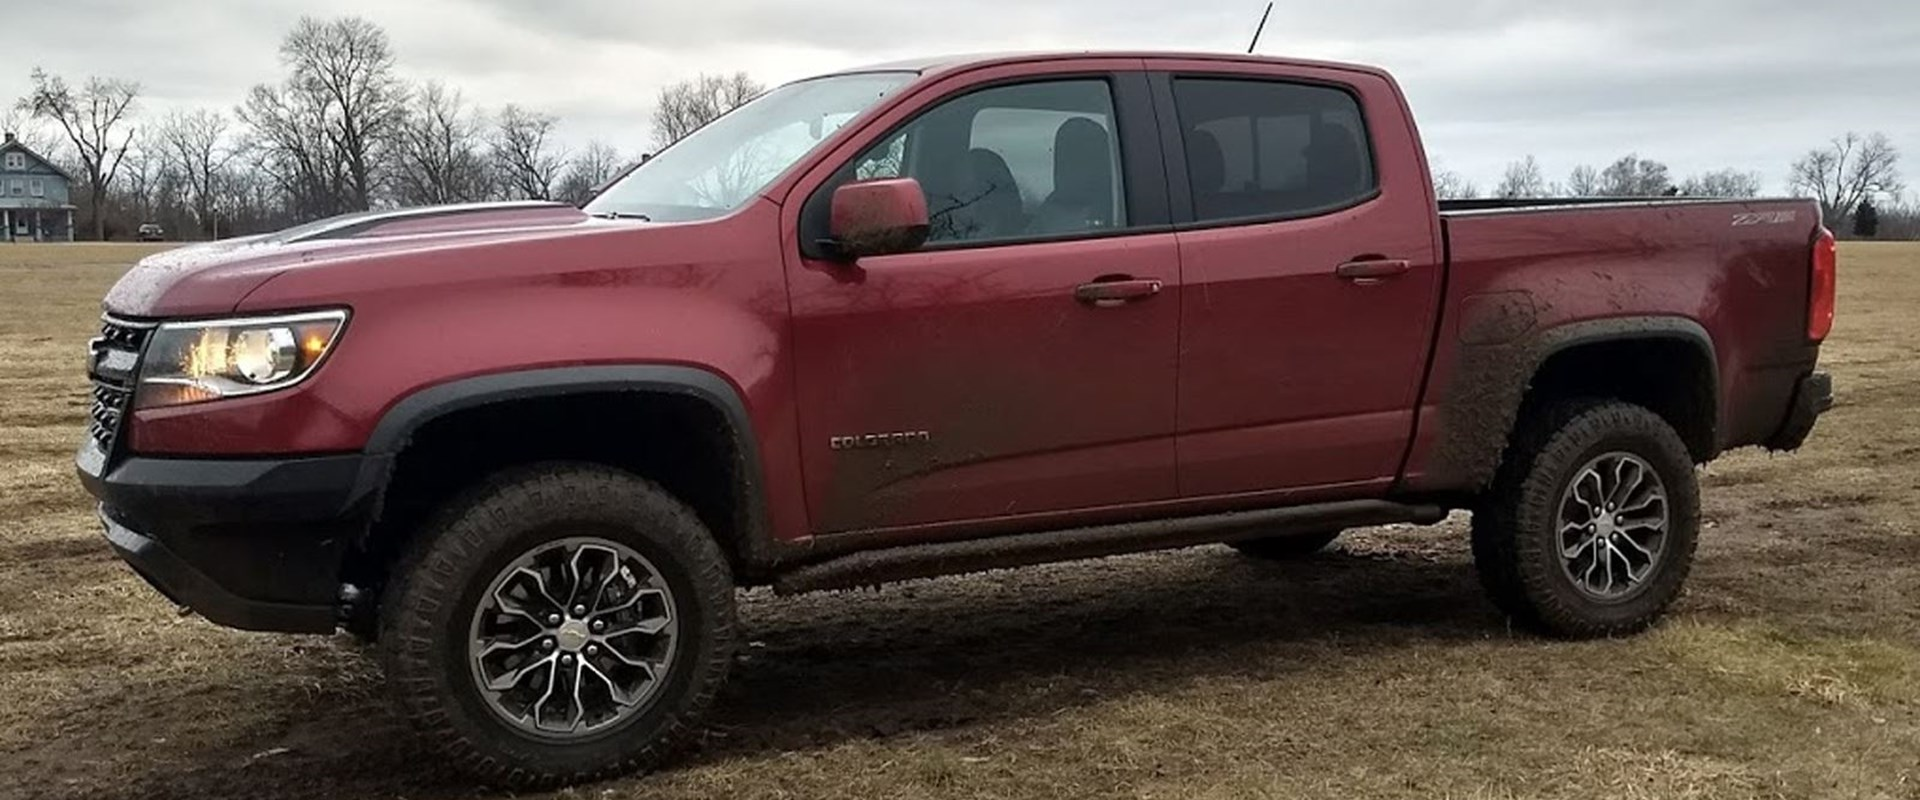 2018 Chevrolet Colorado Zr2 Test Drive Review It Begs To